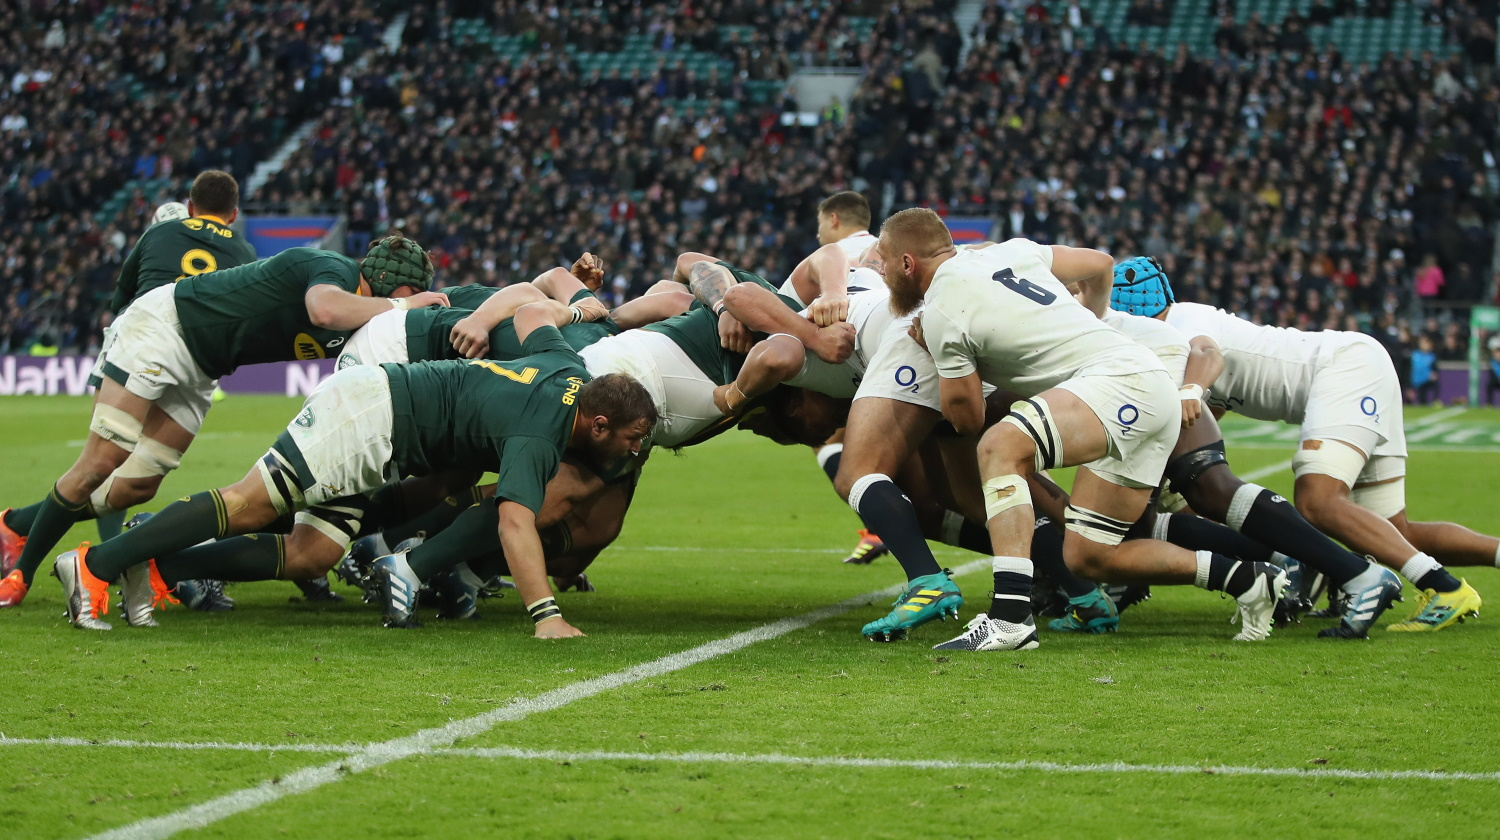 england vs new zealand rugby stream free